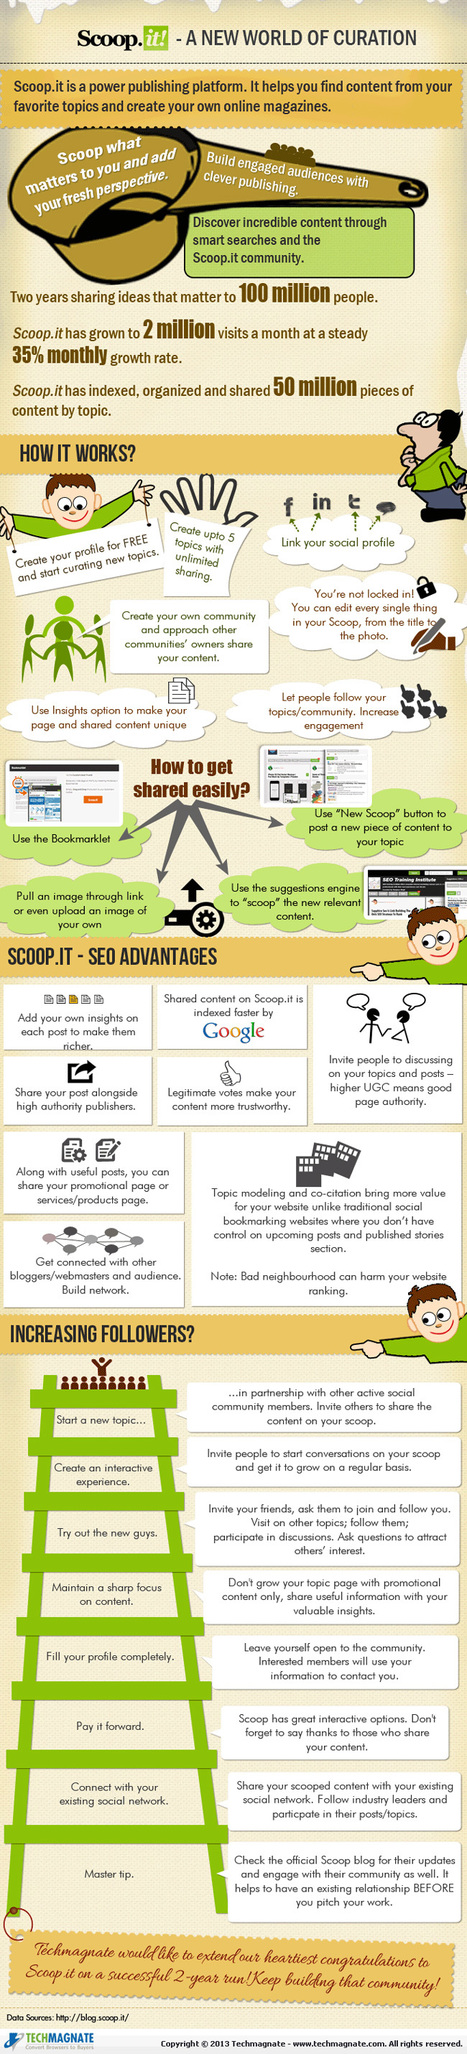 Scoop.It for SEO – A New World of Curation [Infographic] | Curation with Scoop.it, Pinterest, & Social Media | Scoop.it